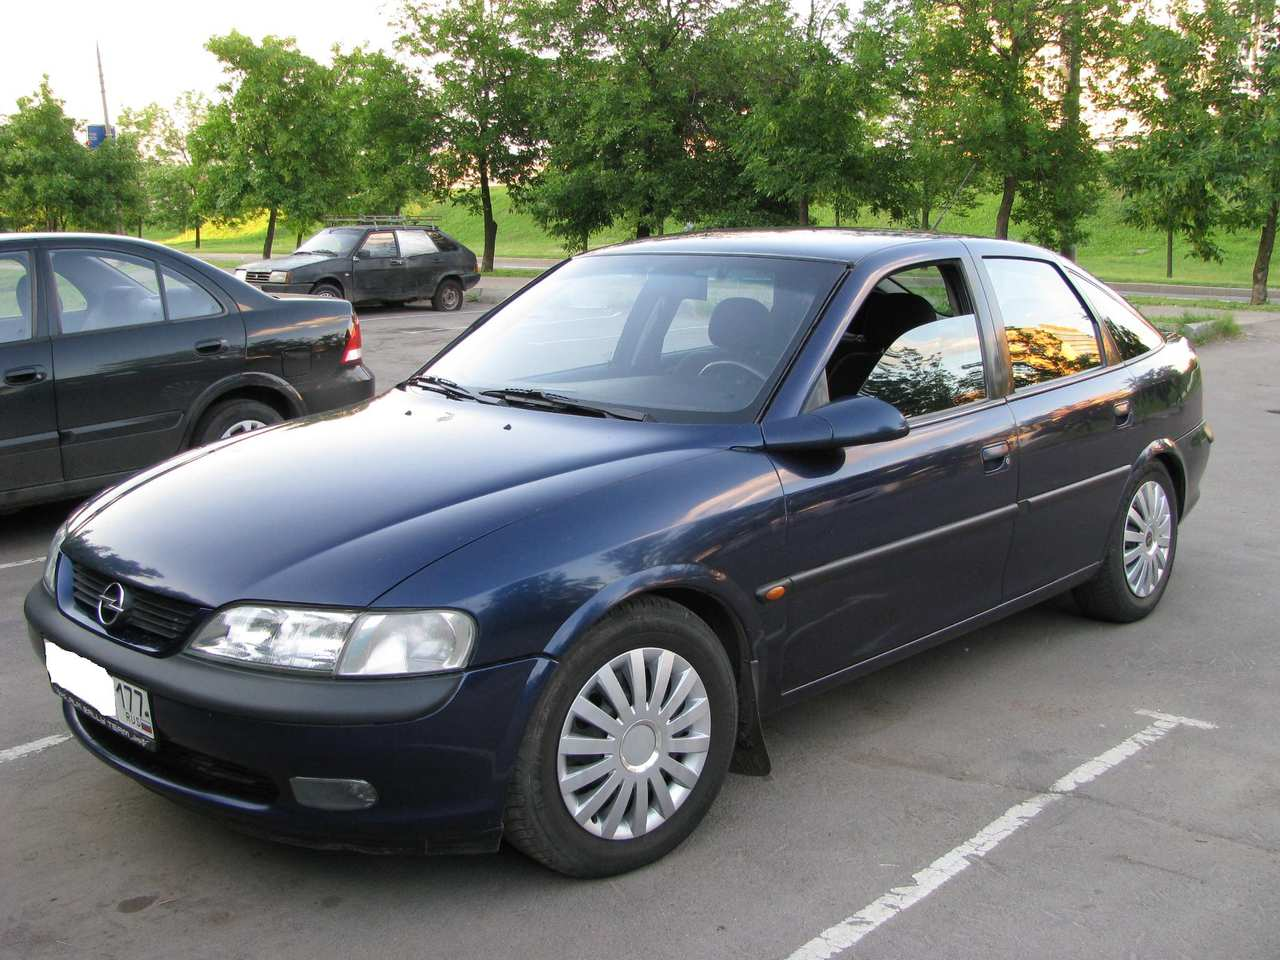 used 1998 opel vectra photos 1998cc gasoline ff manual for sale. Black Bedroom Furniture Sets. Home Design Ideas